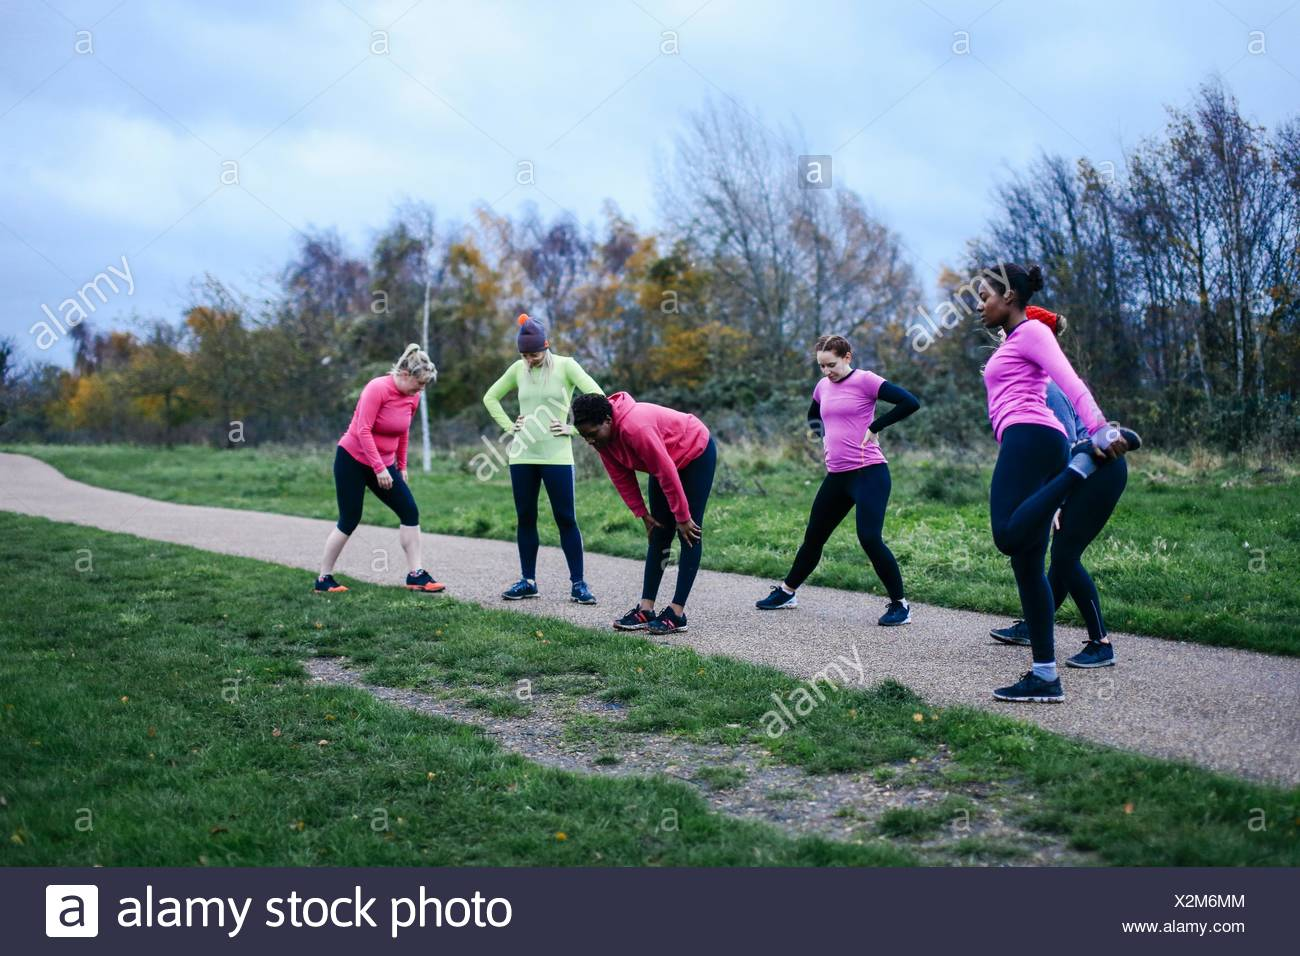 Six adult female runners warming up together on park path Stock Photo